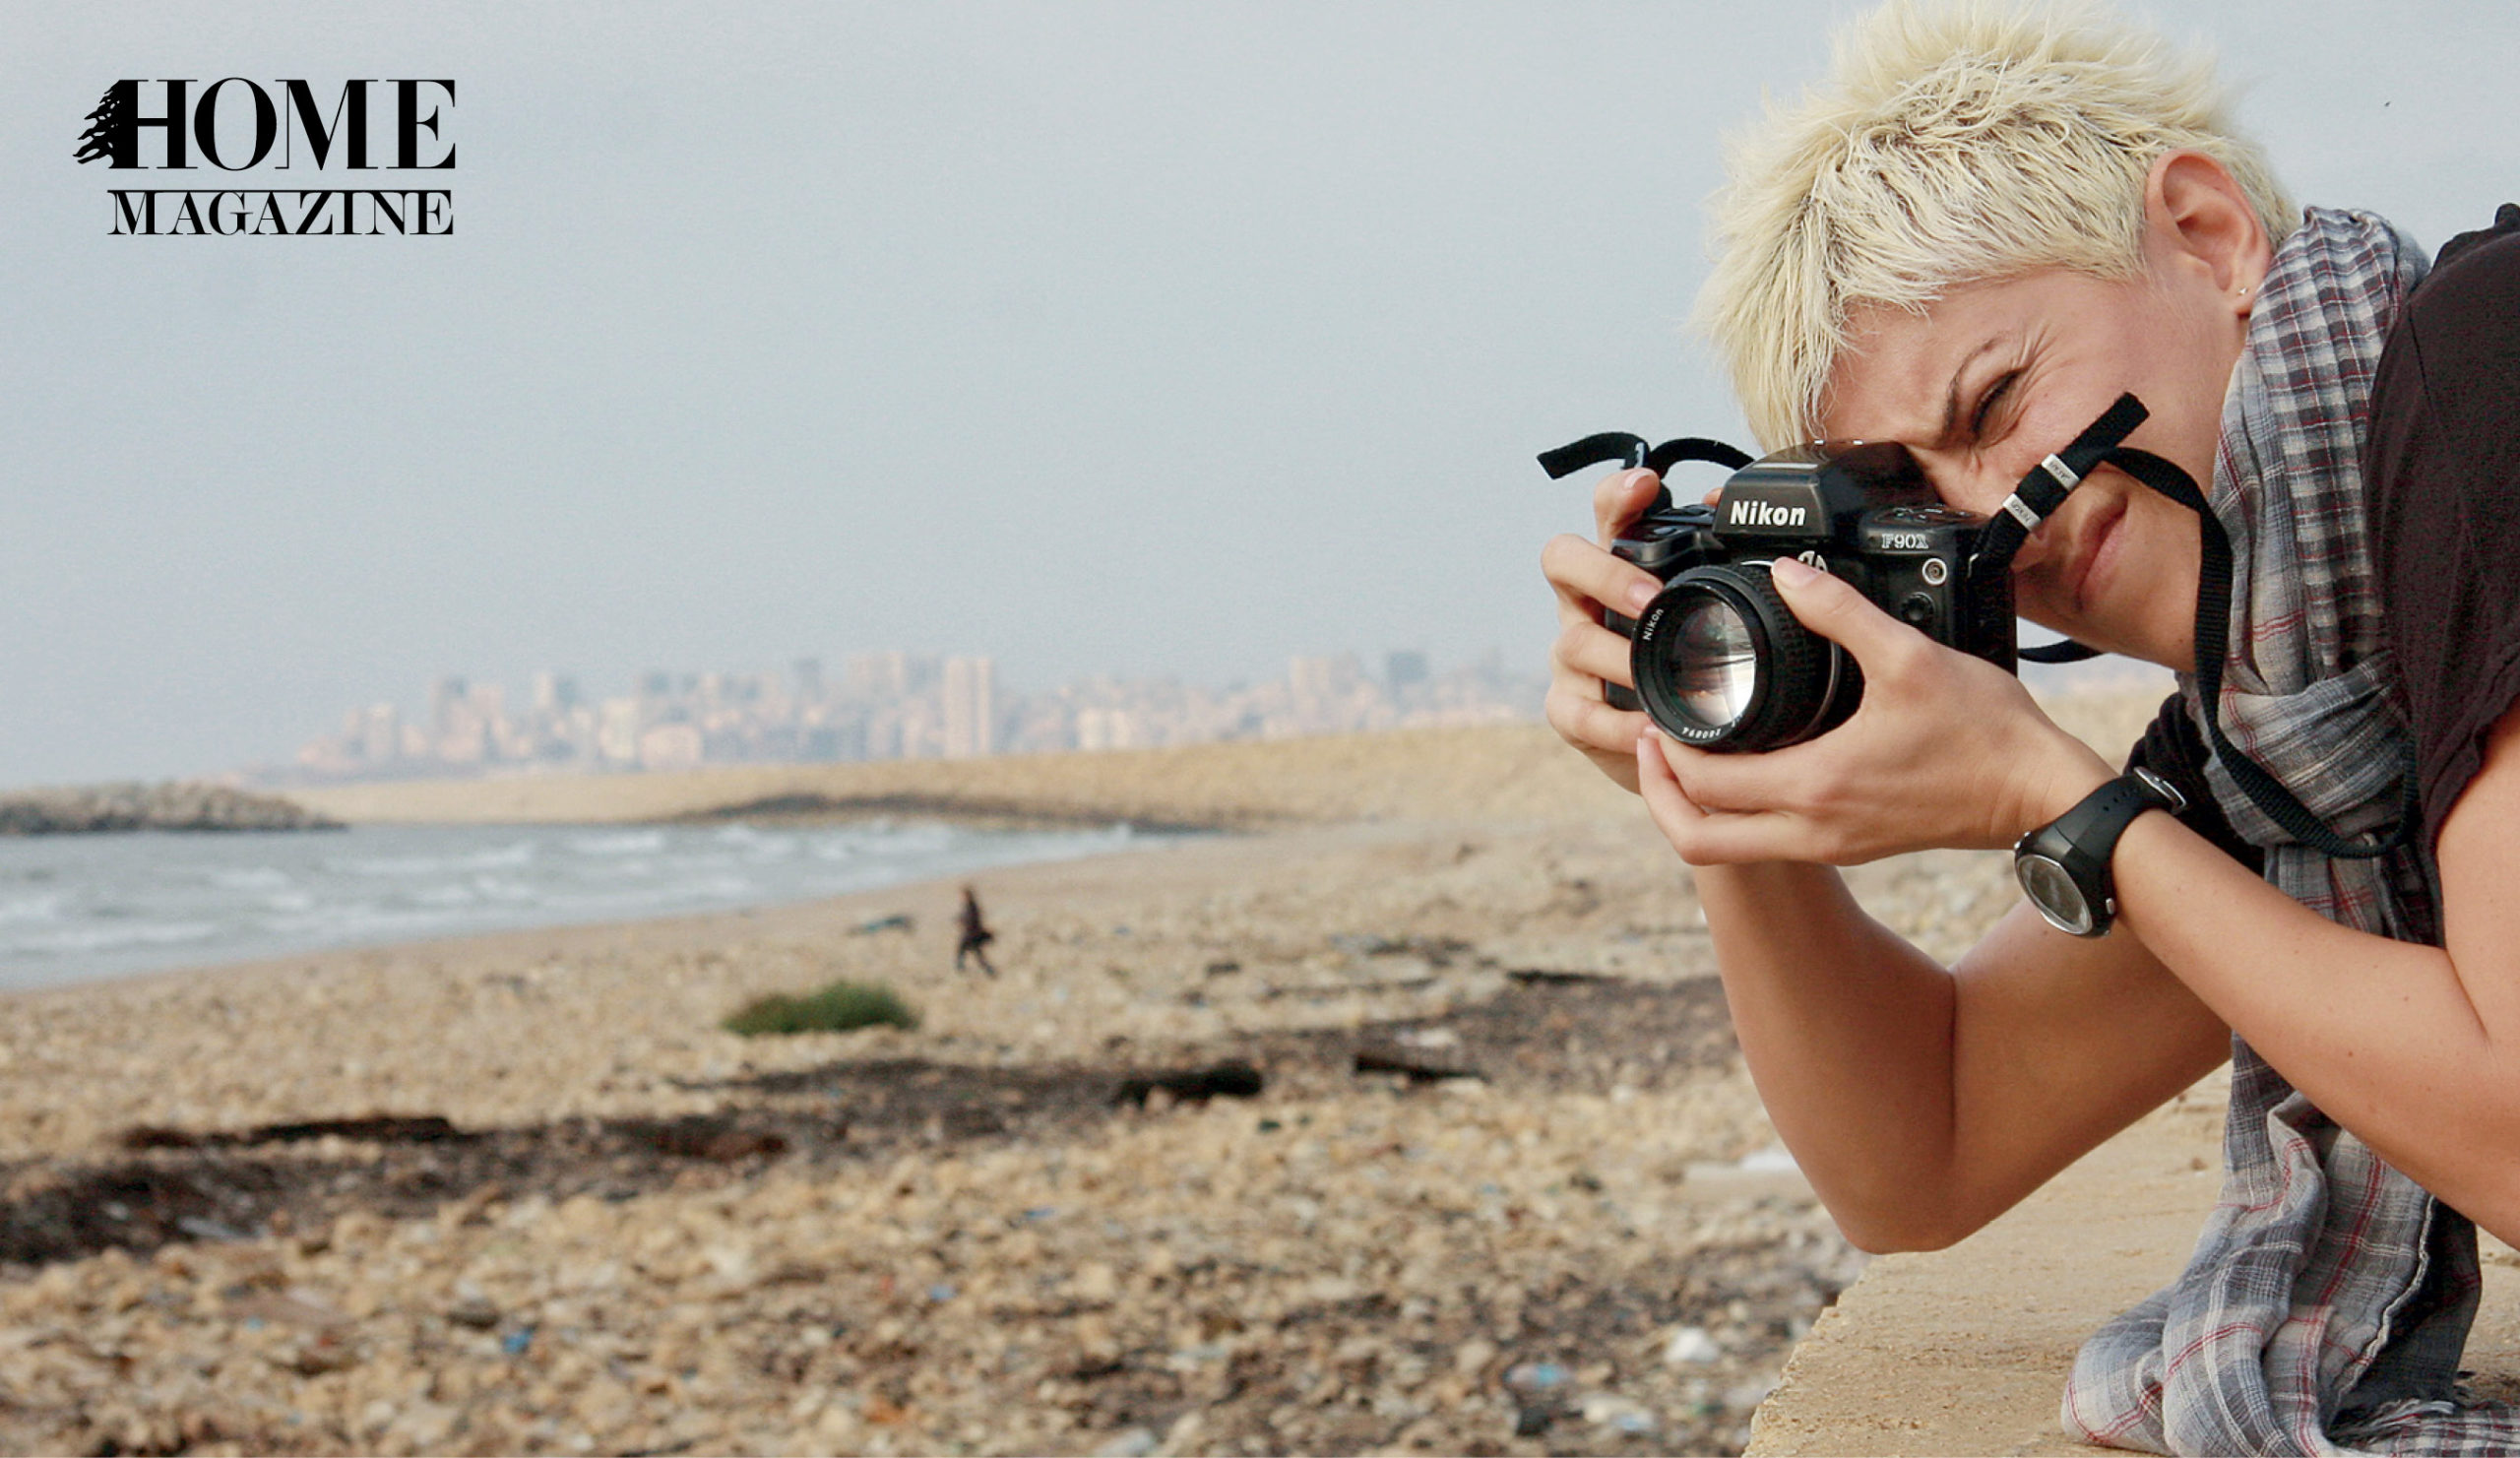 Woman with blond spike hair and scarf taking a picture with a black camera